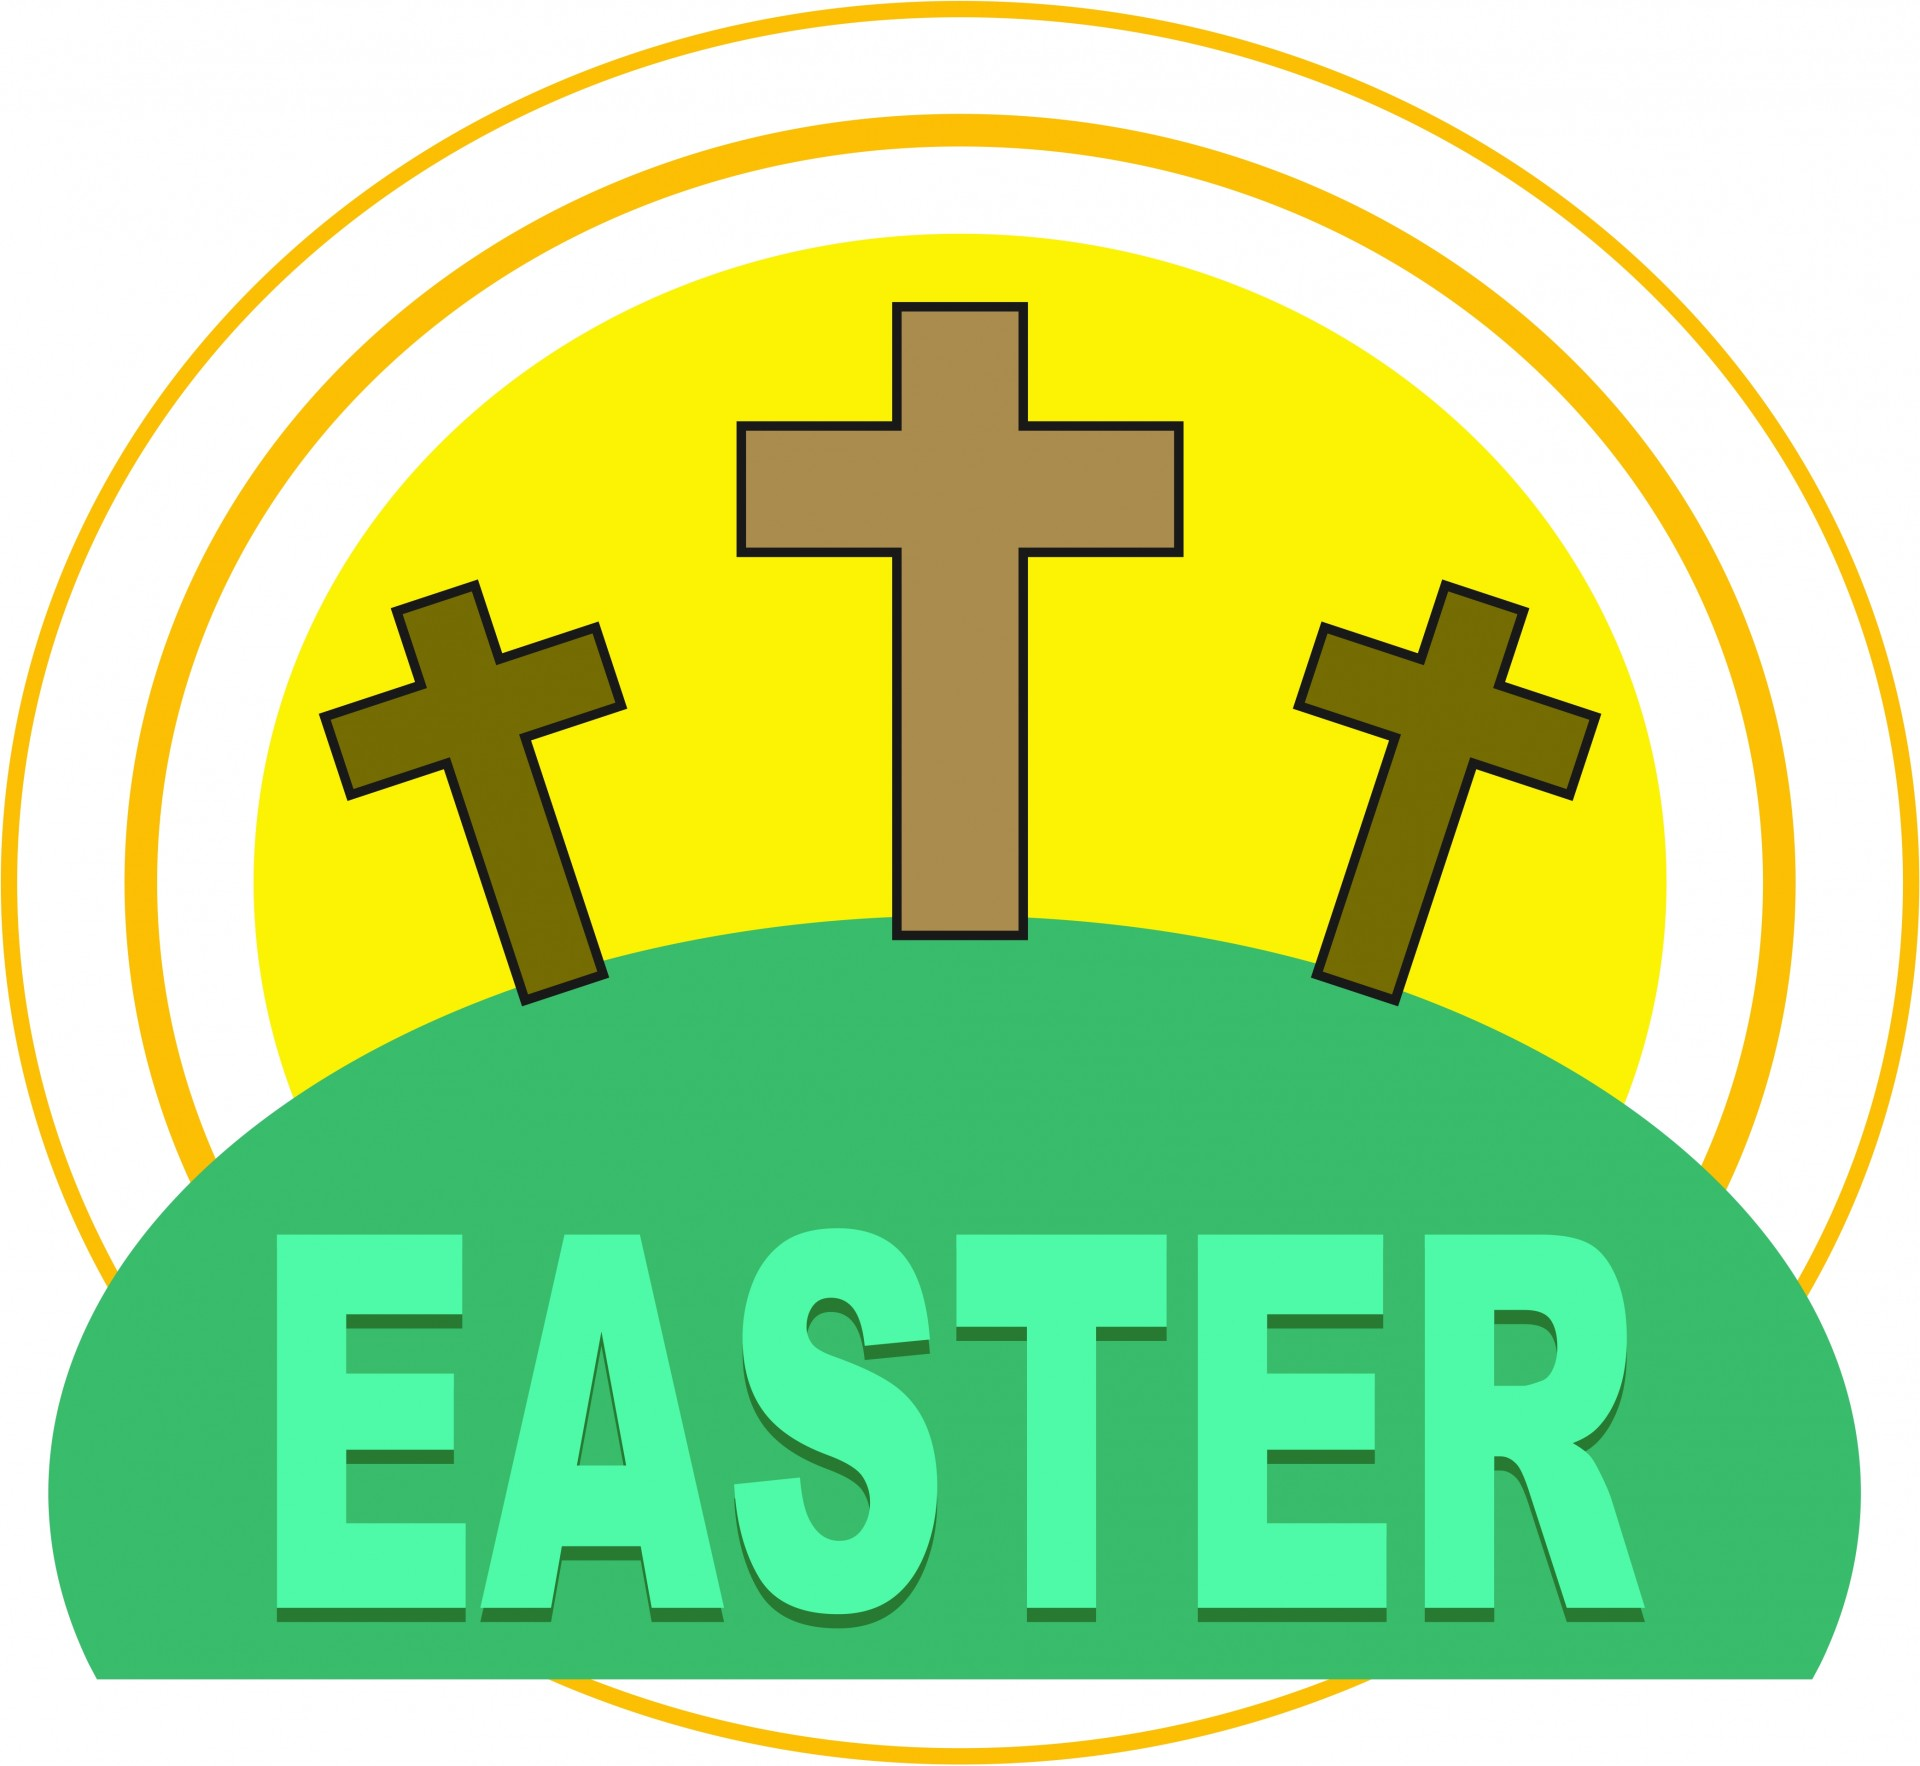 Free Christian Easter Clipart at GetDrawings.com.